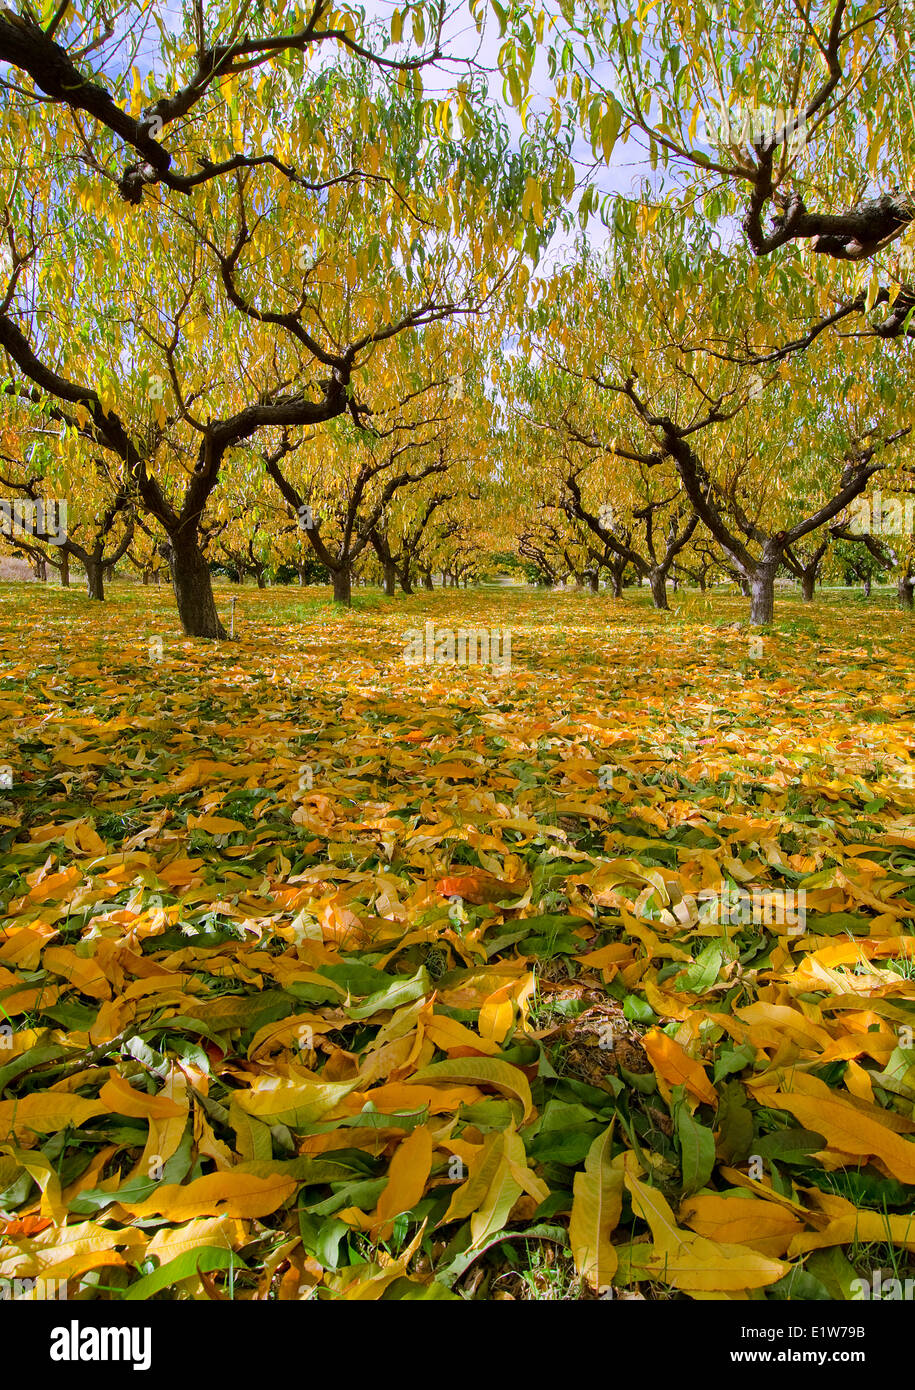 Fruit trees line an orchard in the fall near Summerland in the Thompson Okanagan region of British Columbia, Canada - Stock Image